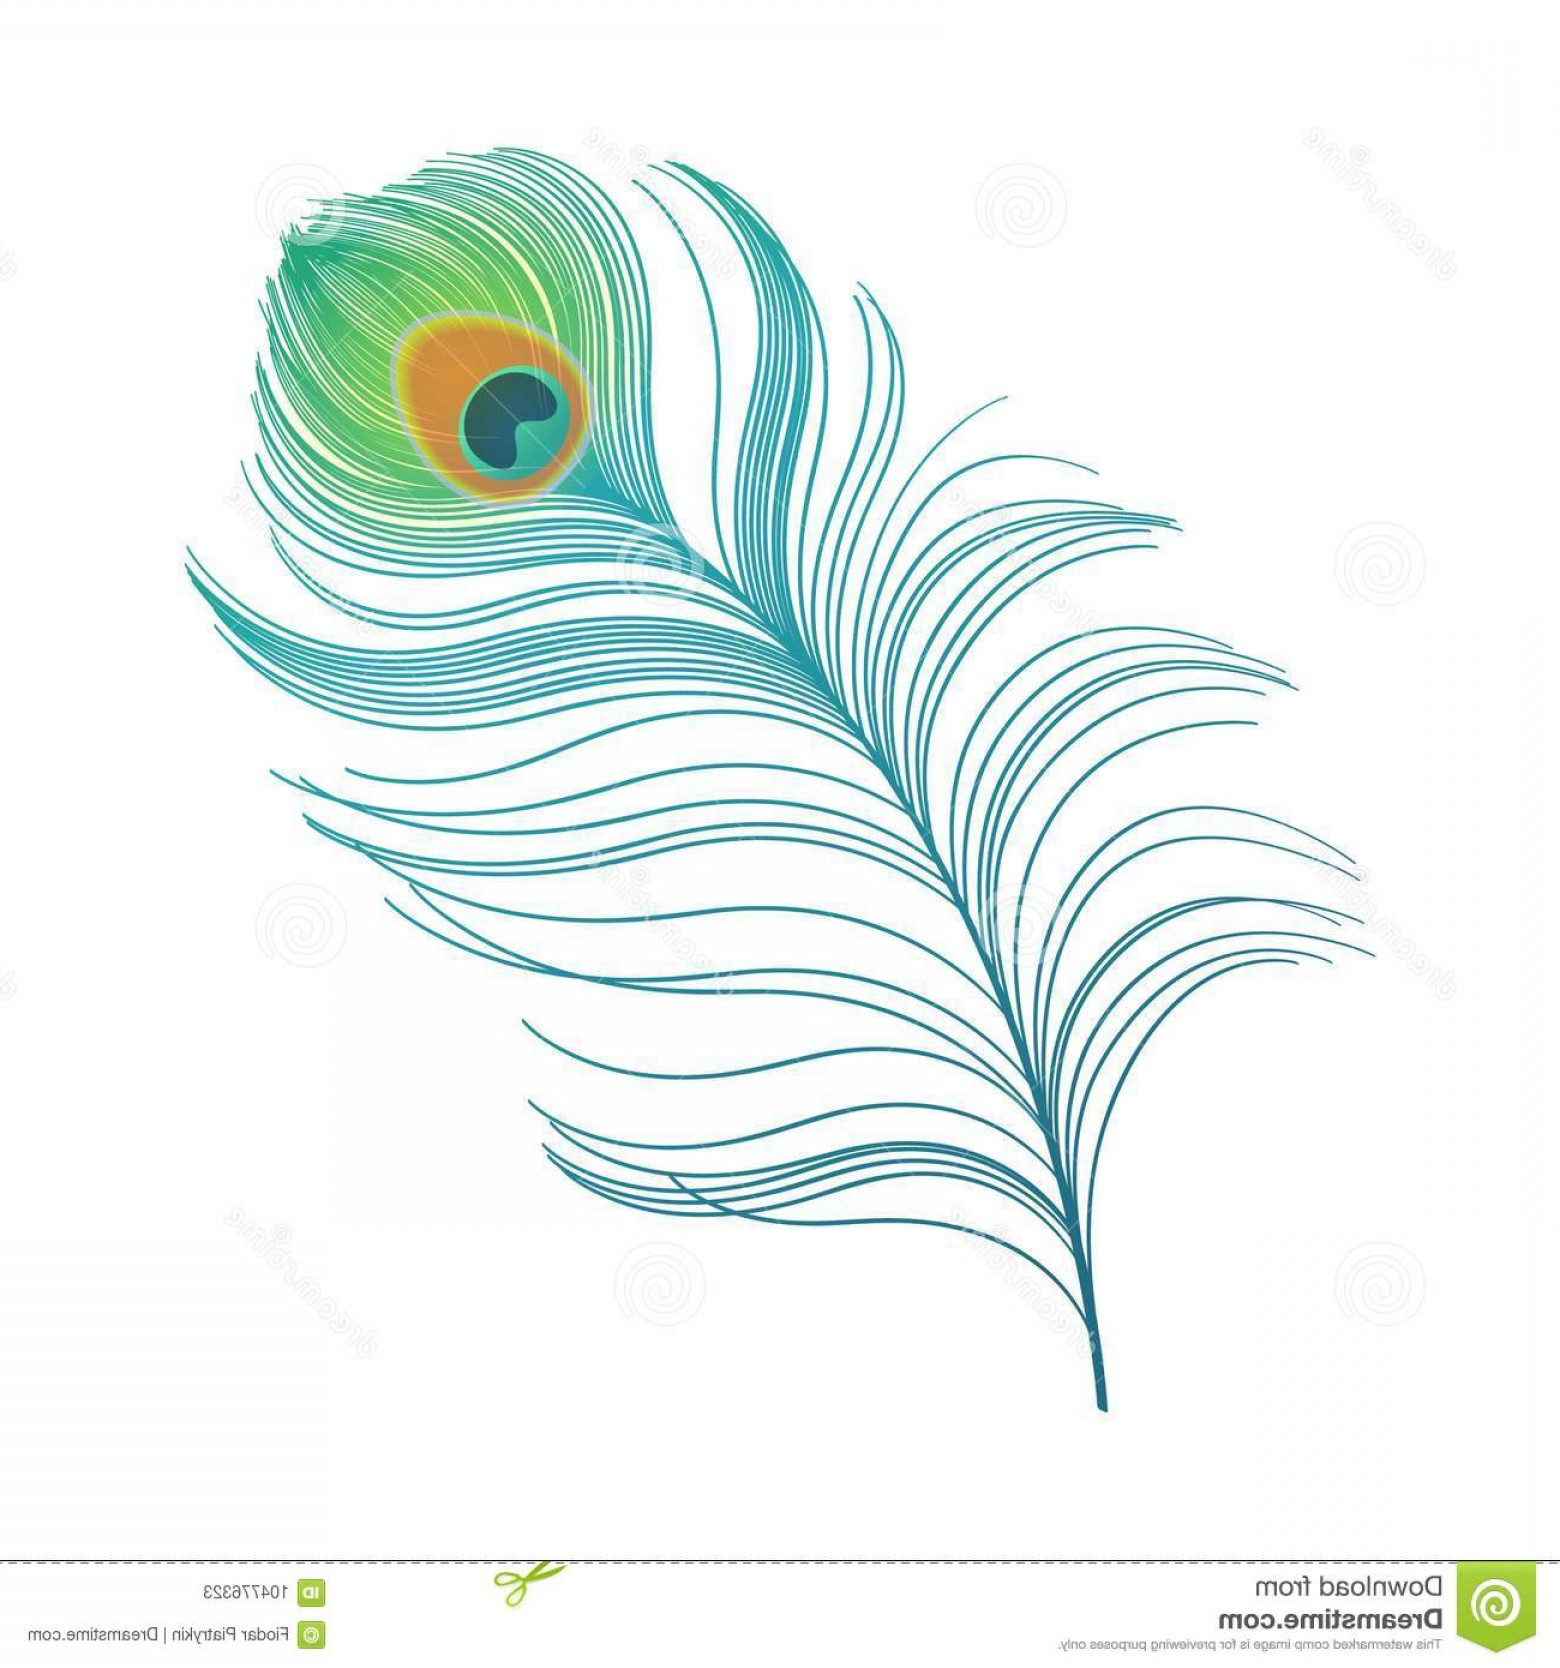 Peacock feather clipart vector picture royalty free stock Peacock Plume Colorful Feather Vector Peacock Plume Colorful ... picture royalty free stock